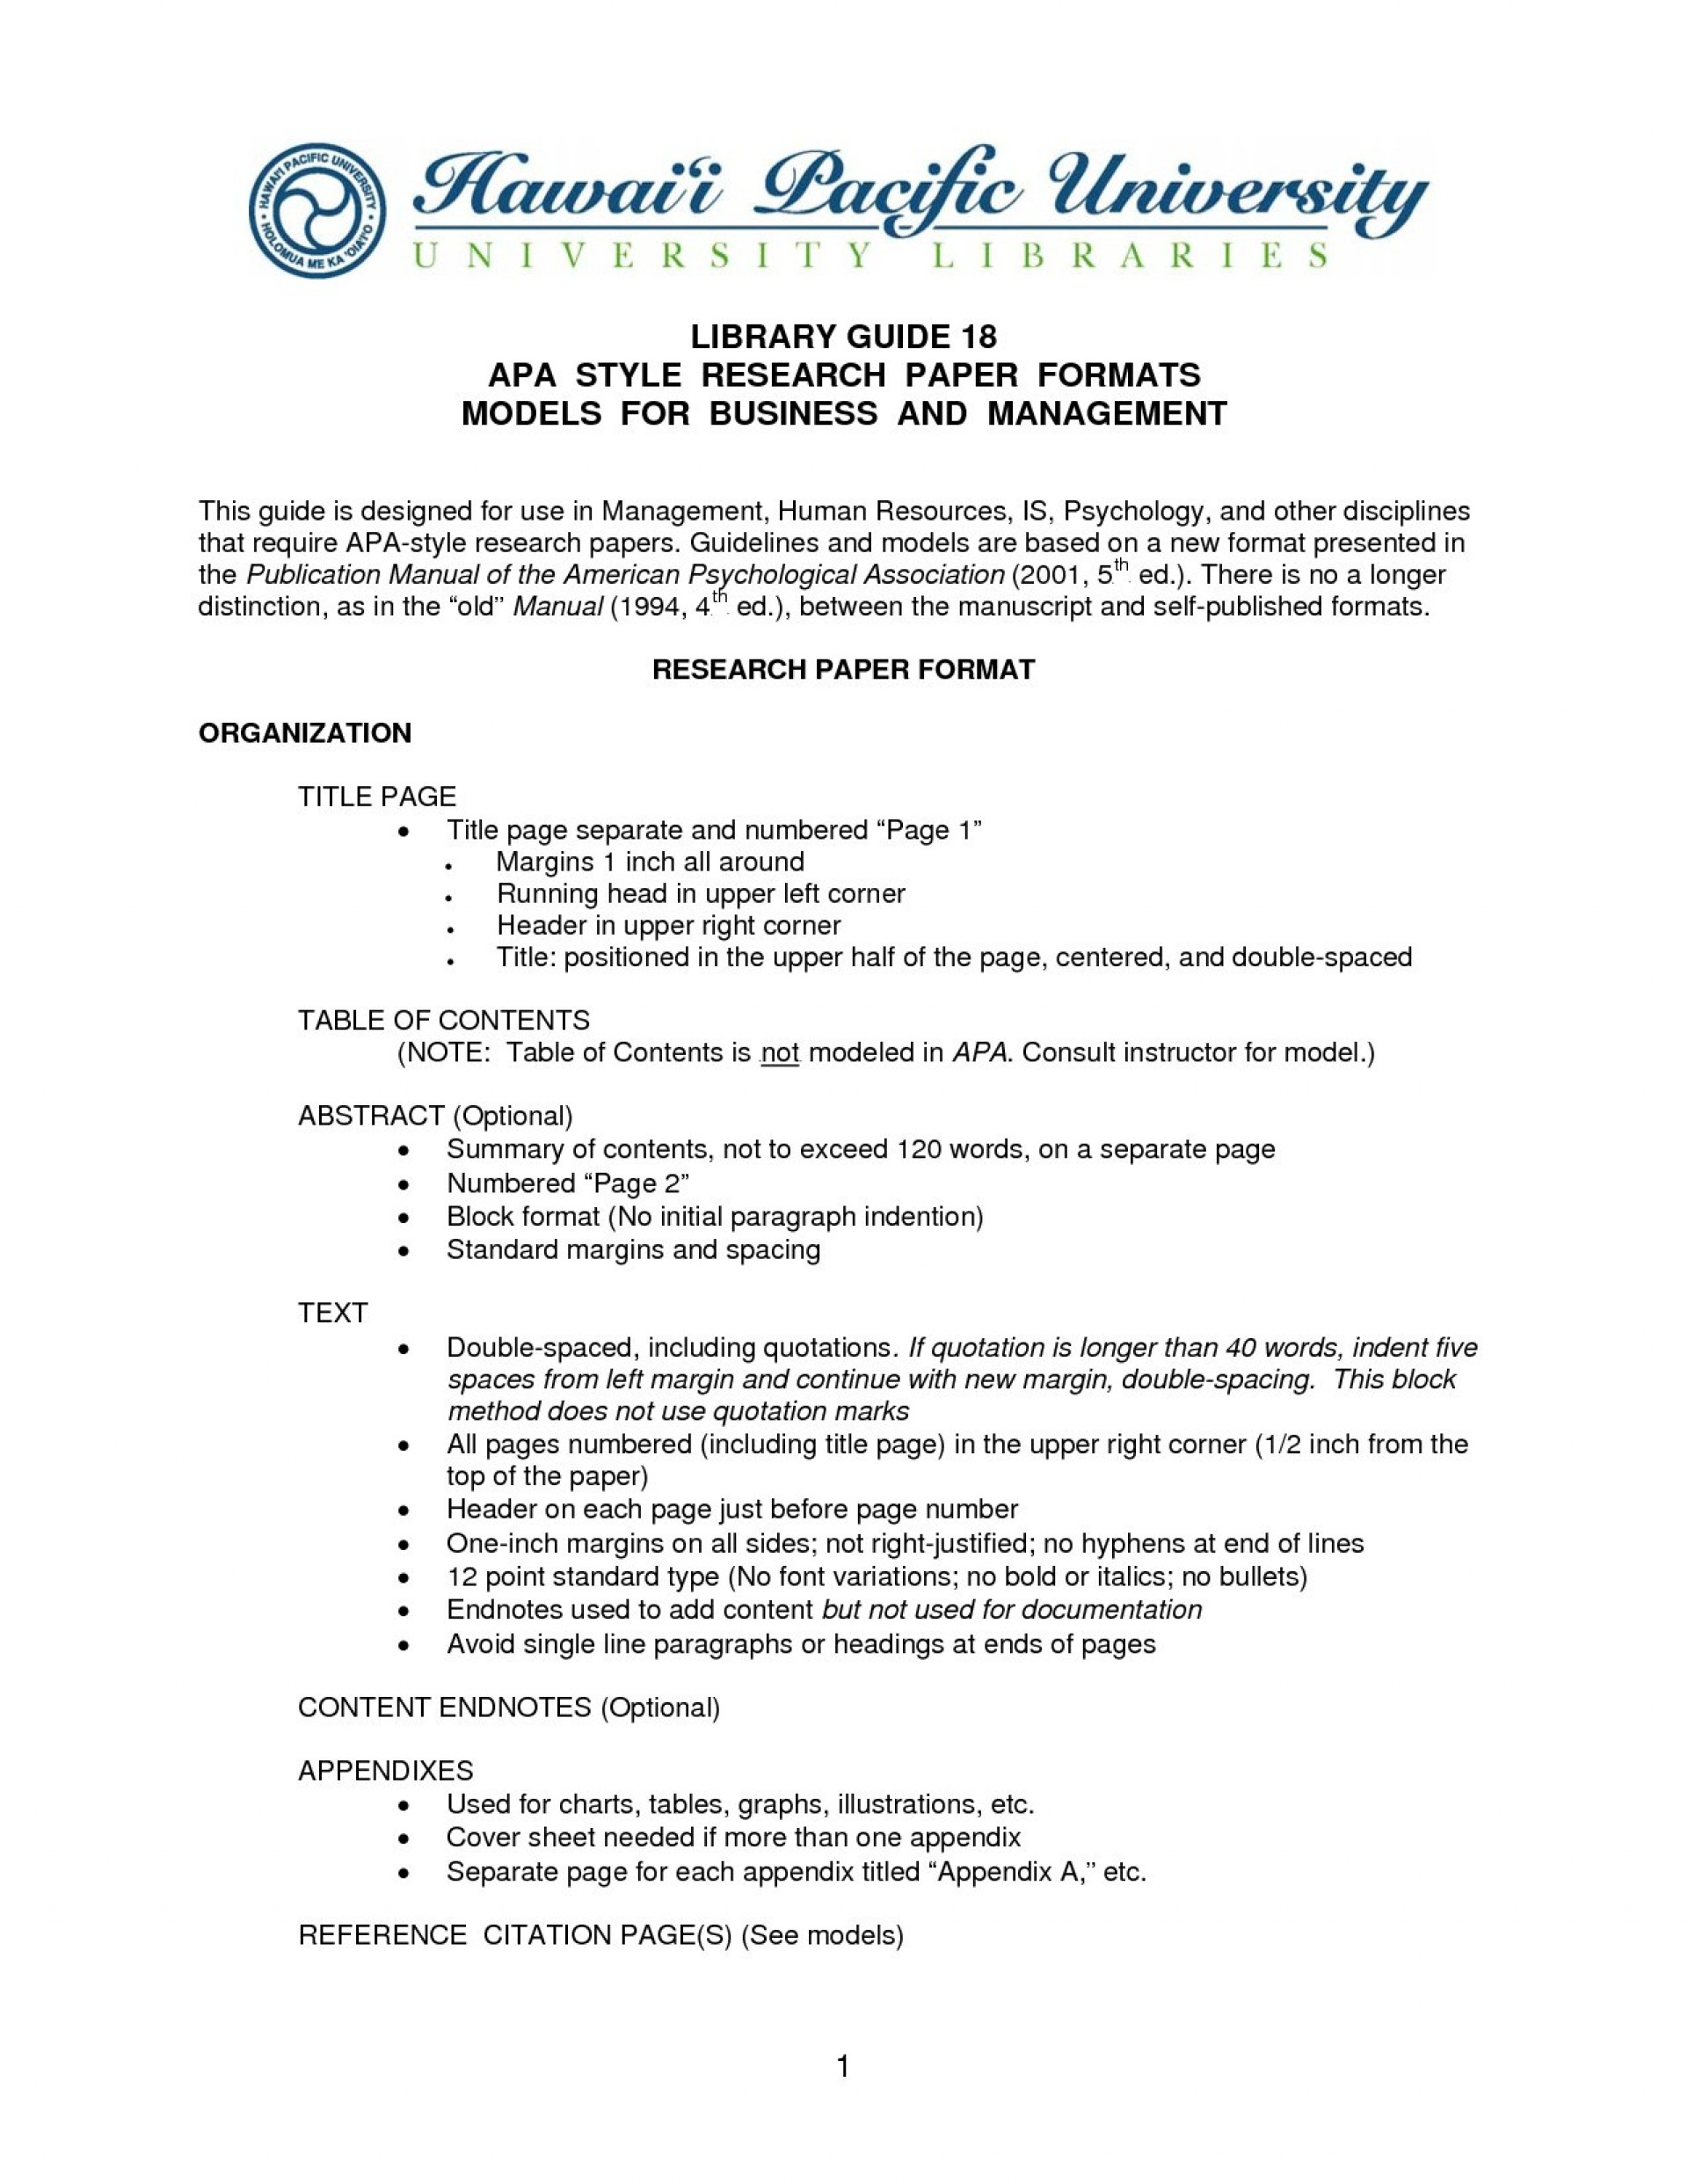 013 Research Statement Example Template Dgpr1ovi Paper Format For Apa Top A Style Sample Outline Introduction - 1920